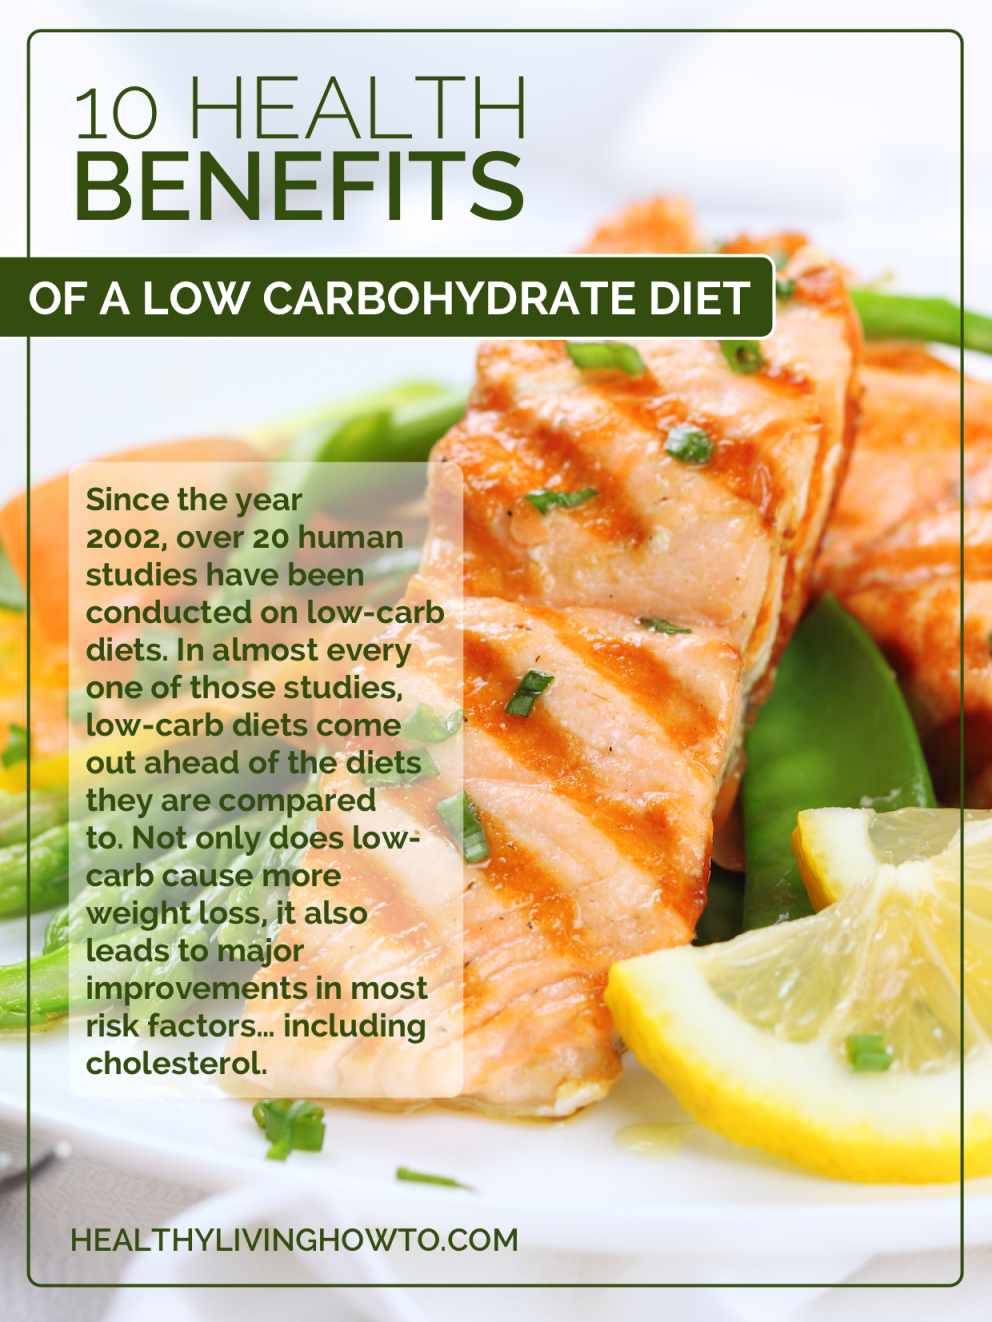 health benefits from a low carb diet